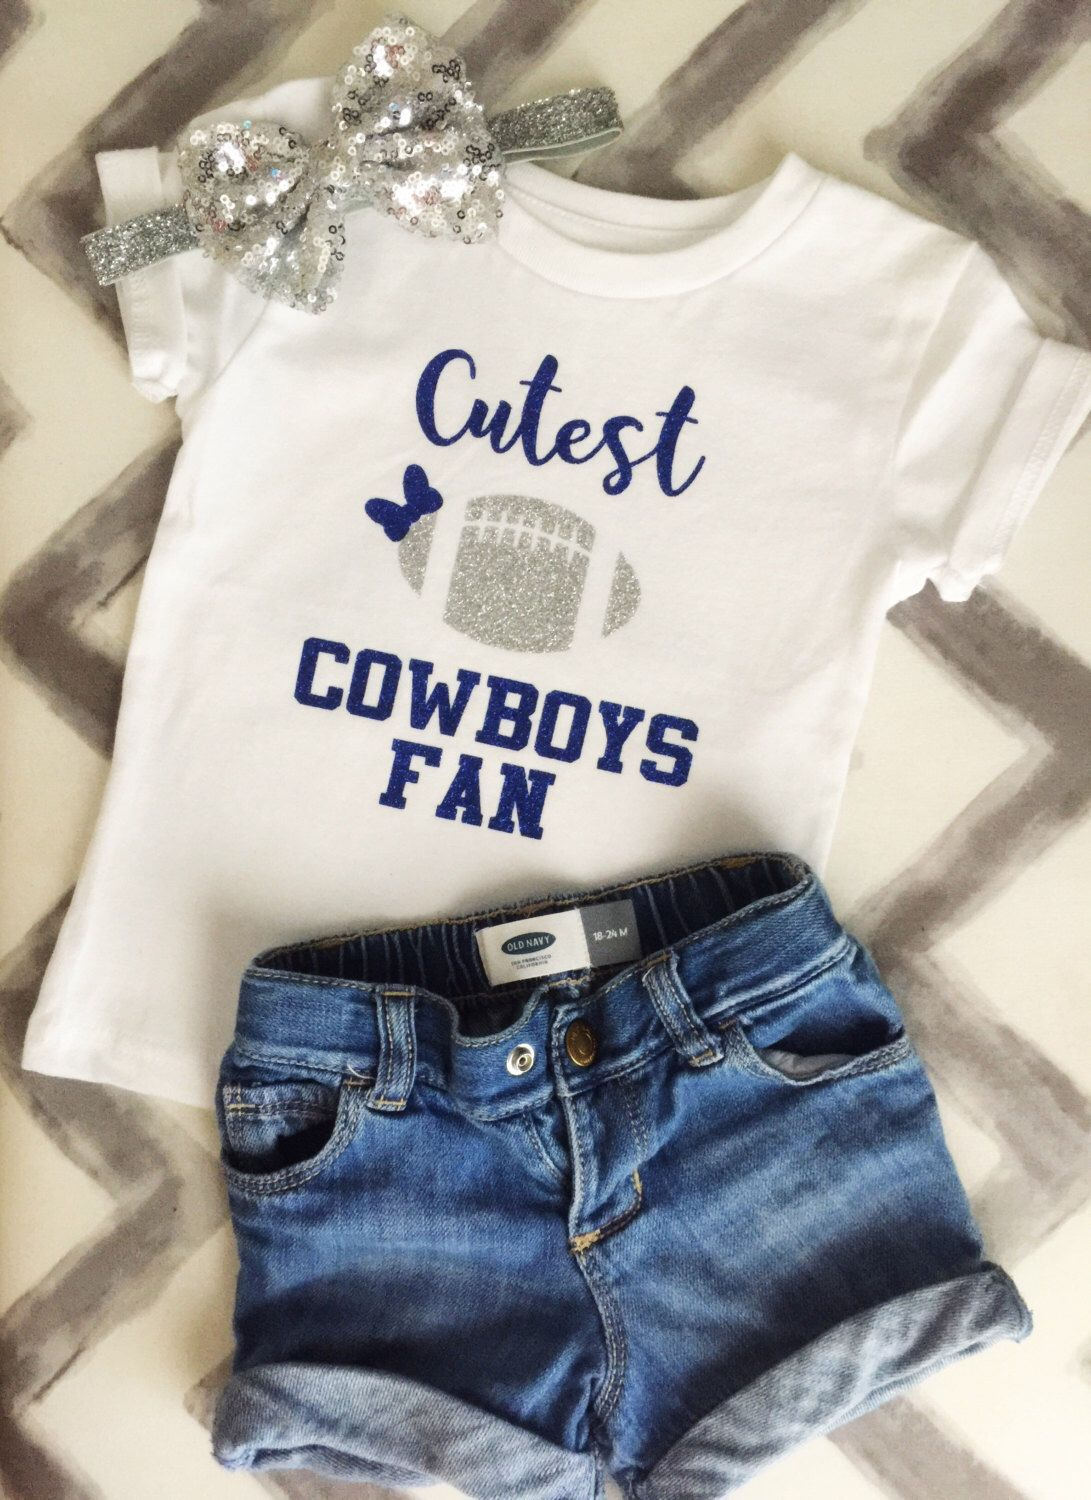 00bad9010df Vinyl Shirts · Cowboy Girl · A personal favorite from my Etsy shop  https://www.etsy.com